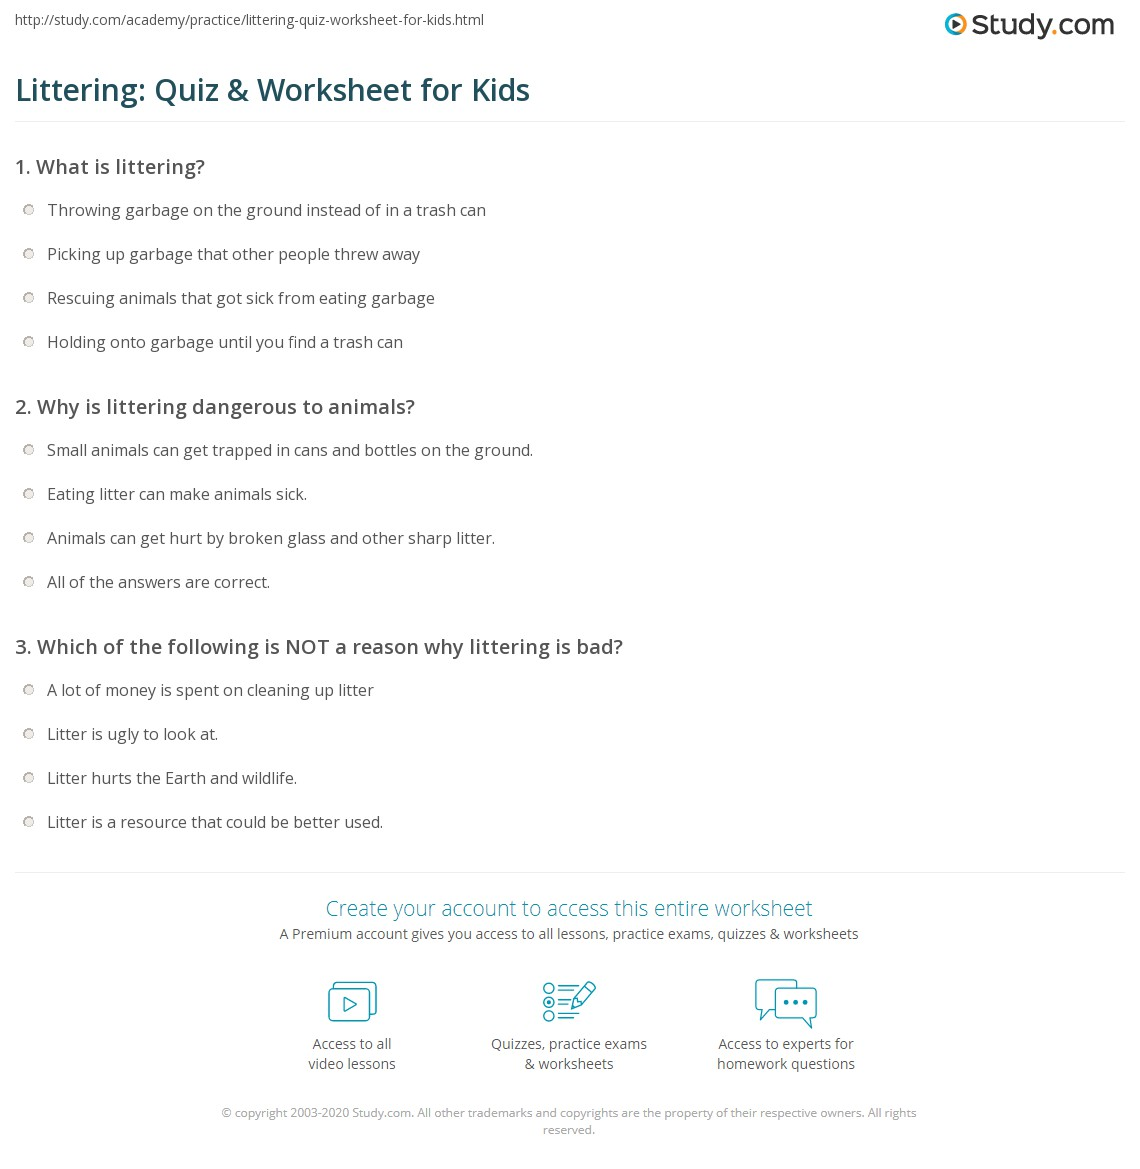 Littering Quiz Amp Worksheet For Kids